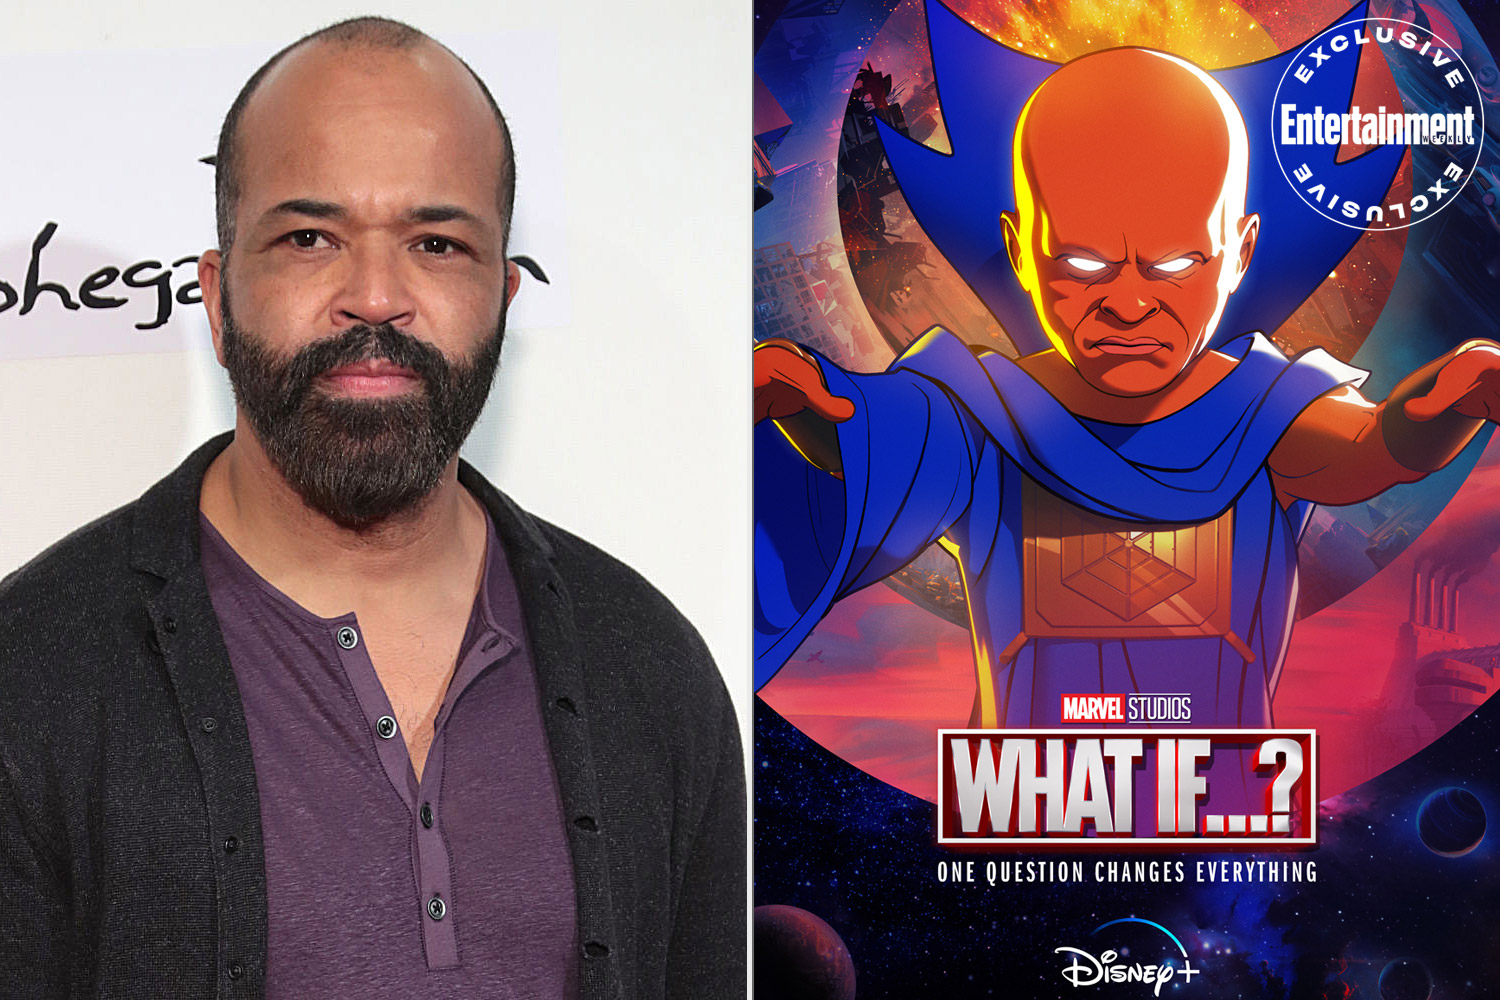 Jeffrey Wright as the Watcher in Marvel's 'What if...?'